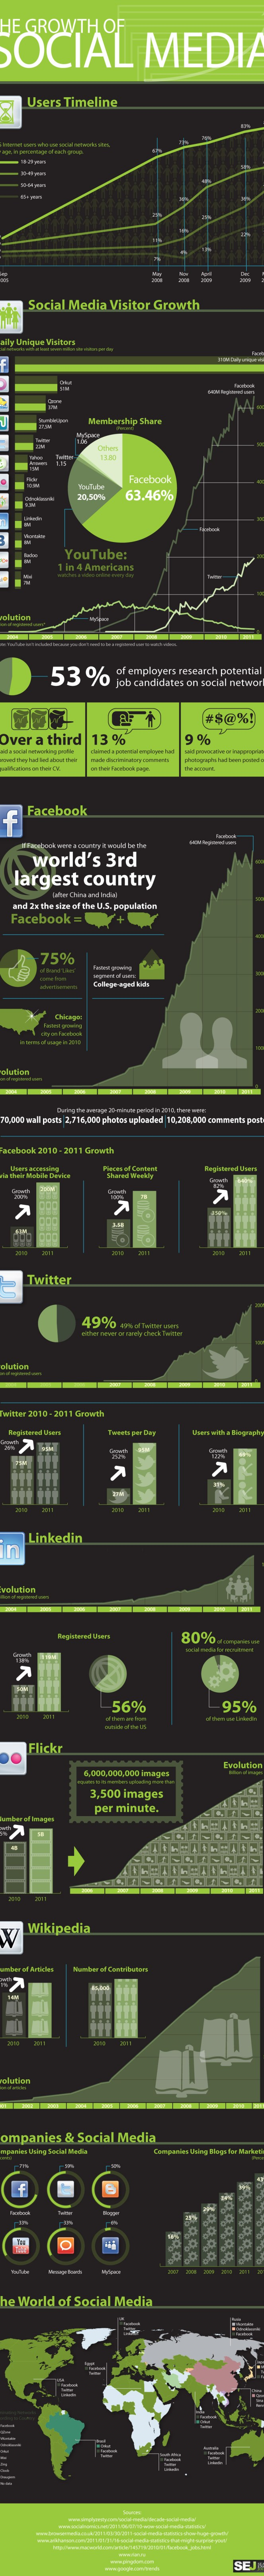 The Growth of Social Media: An Infographic